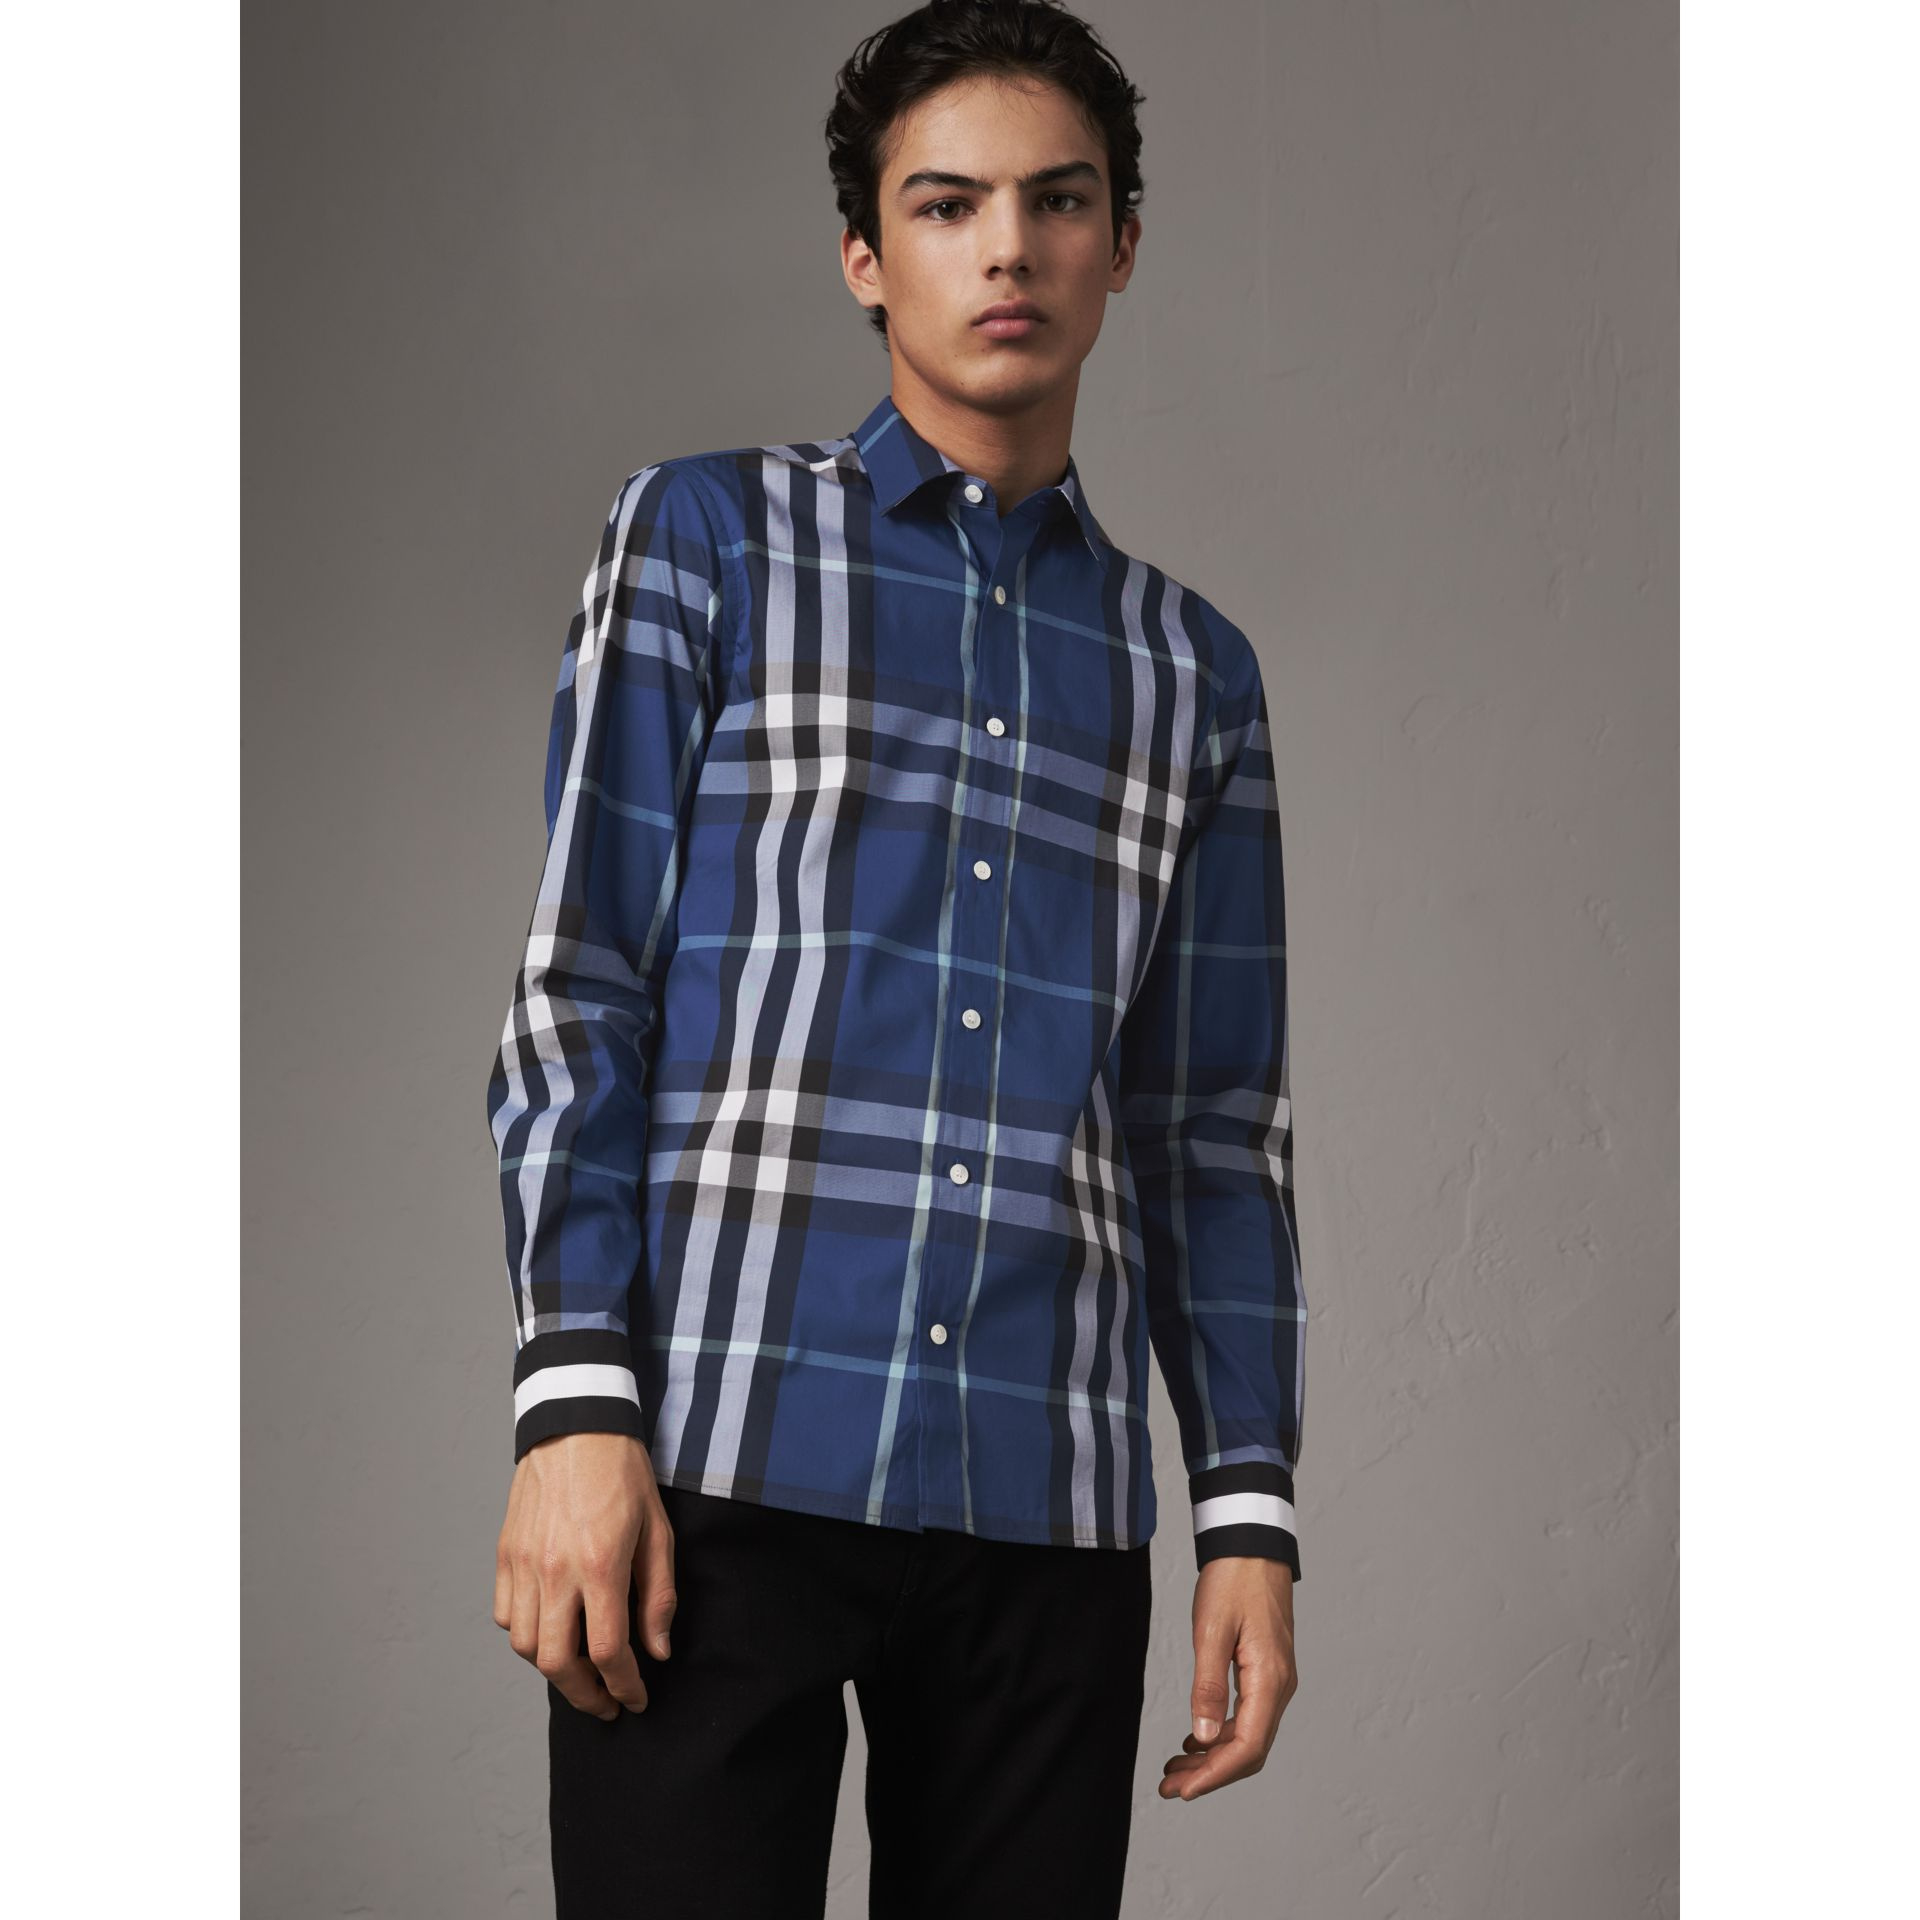 Striped Cuff Check Cotton Blend Shirt in Cobalt Blue - Men | Burberry - gallery image 4